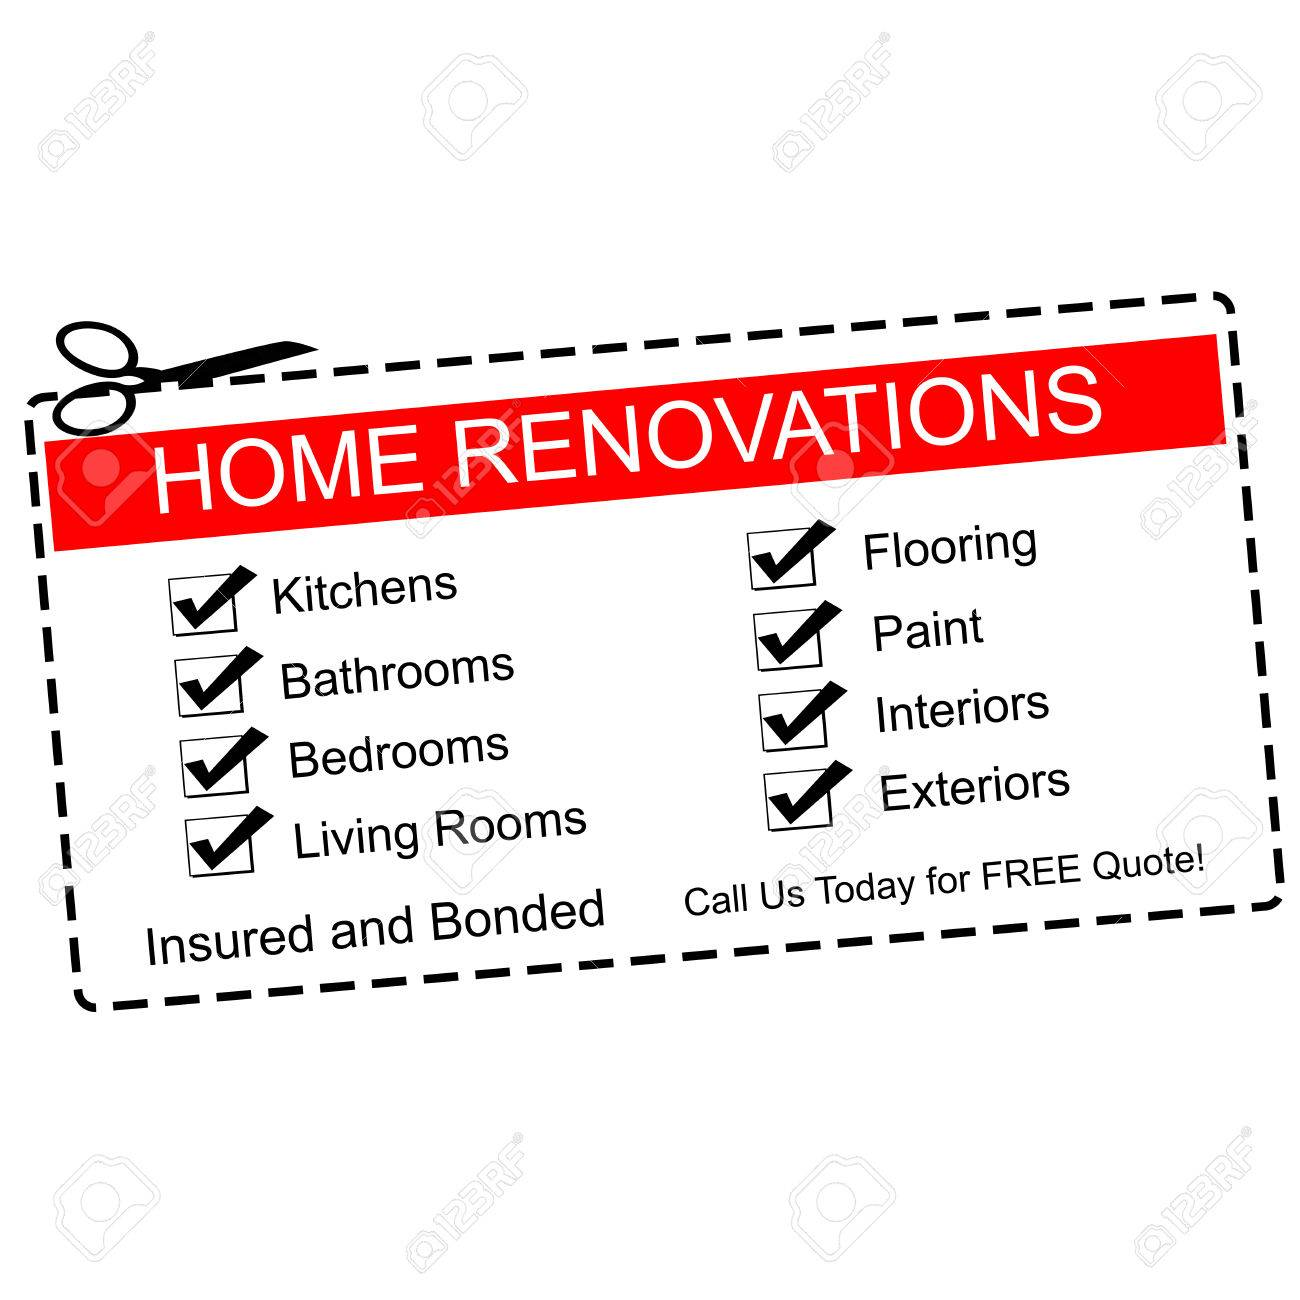 Home Renovations Red Coupon With Great Terms Such As Kitchens, Bathrooms,  Quote And More